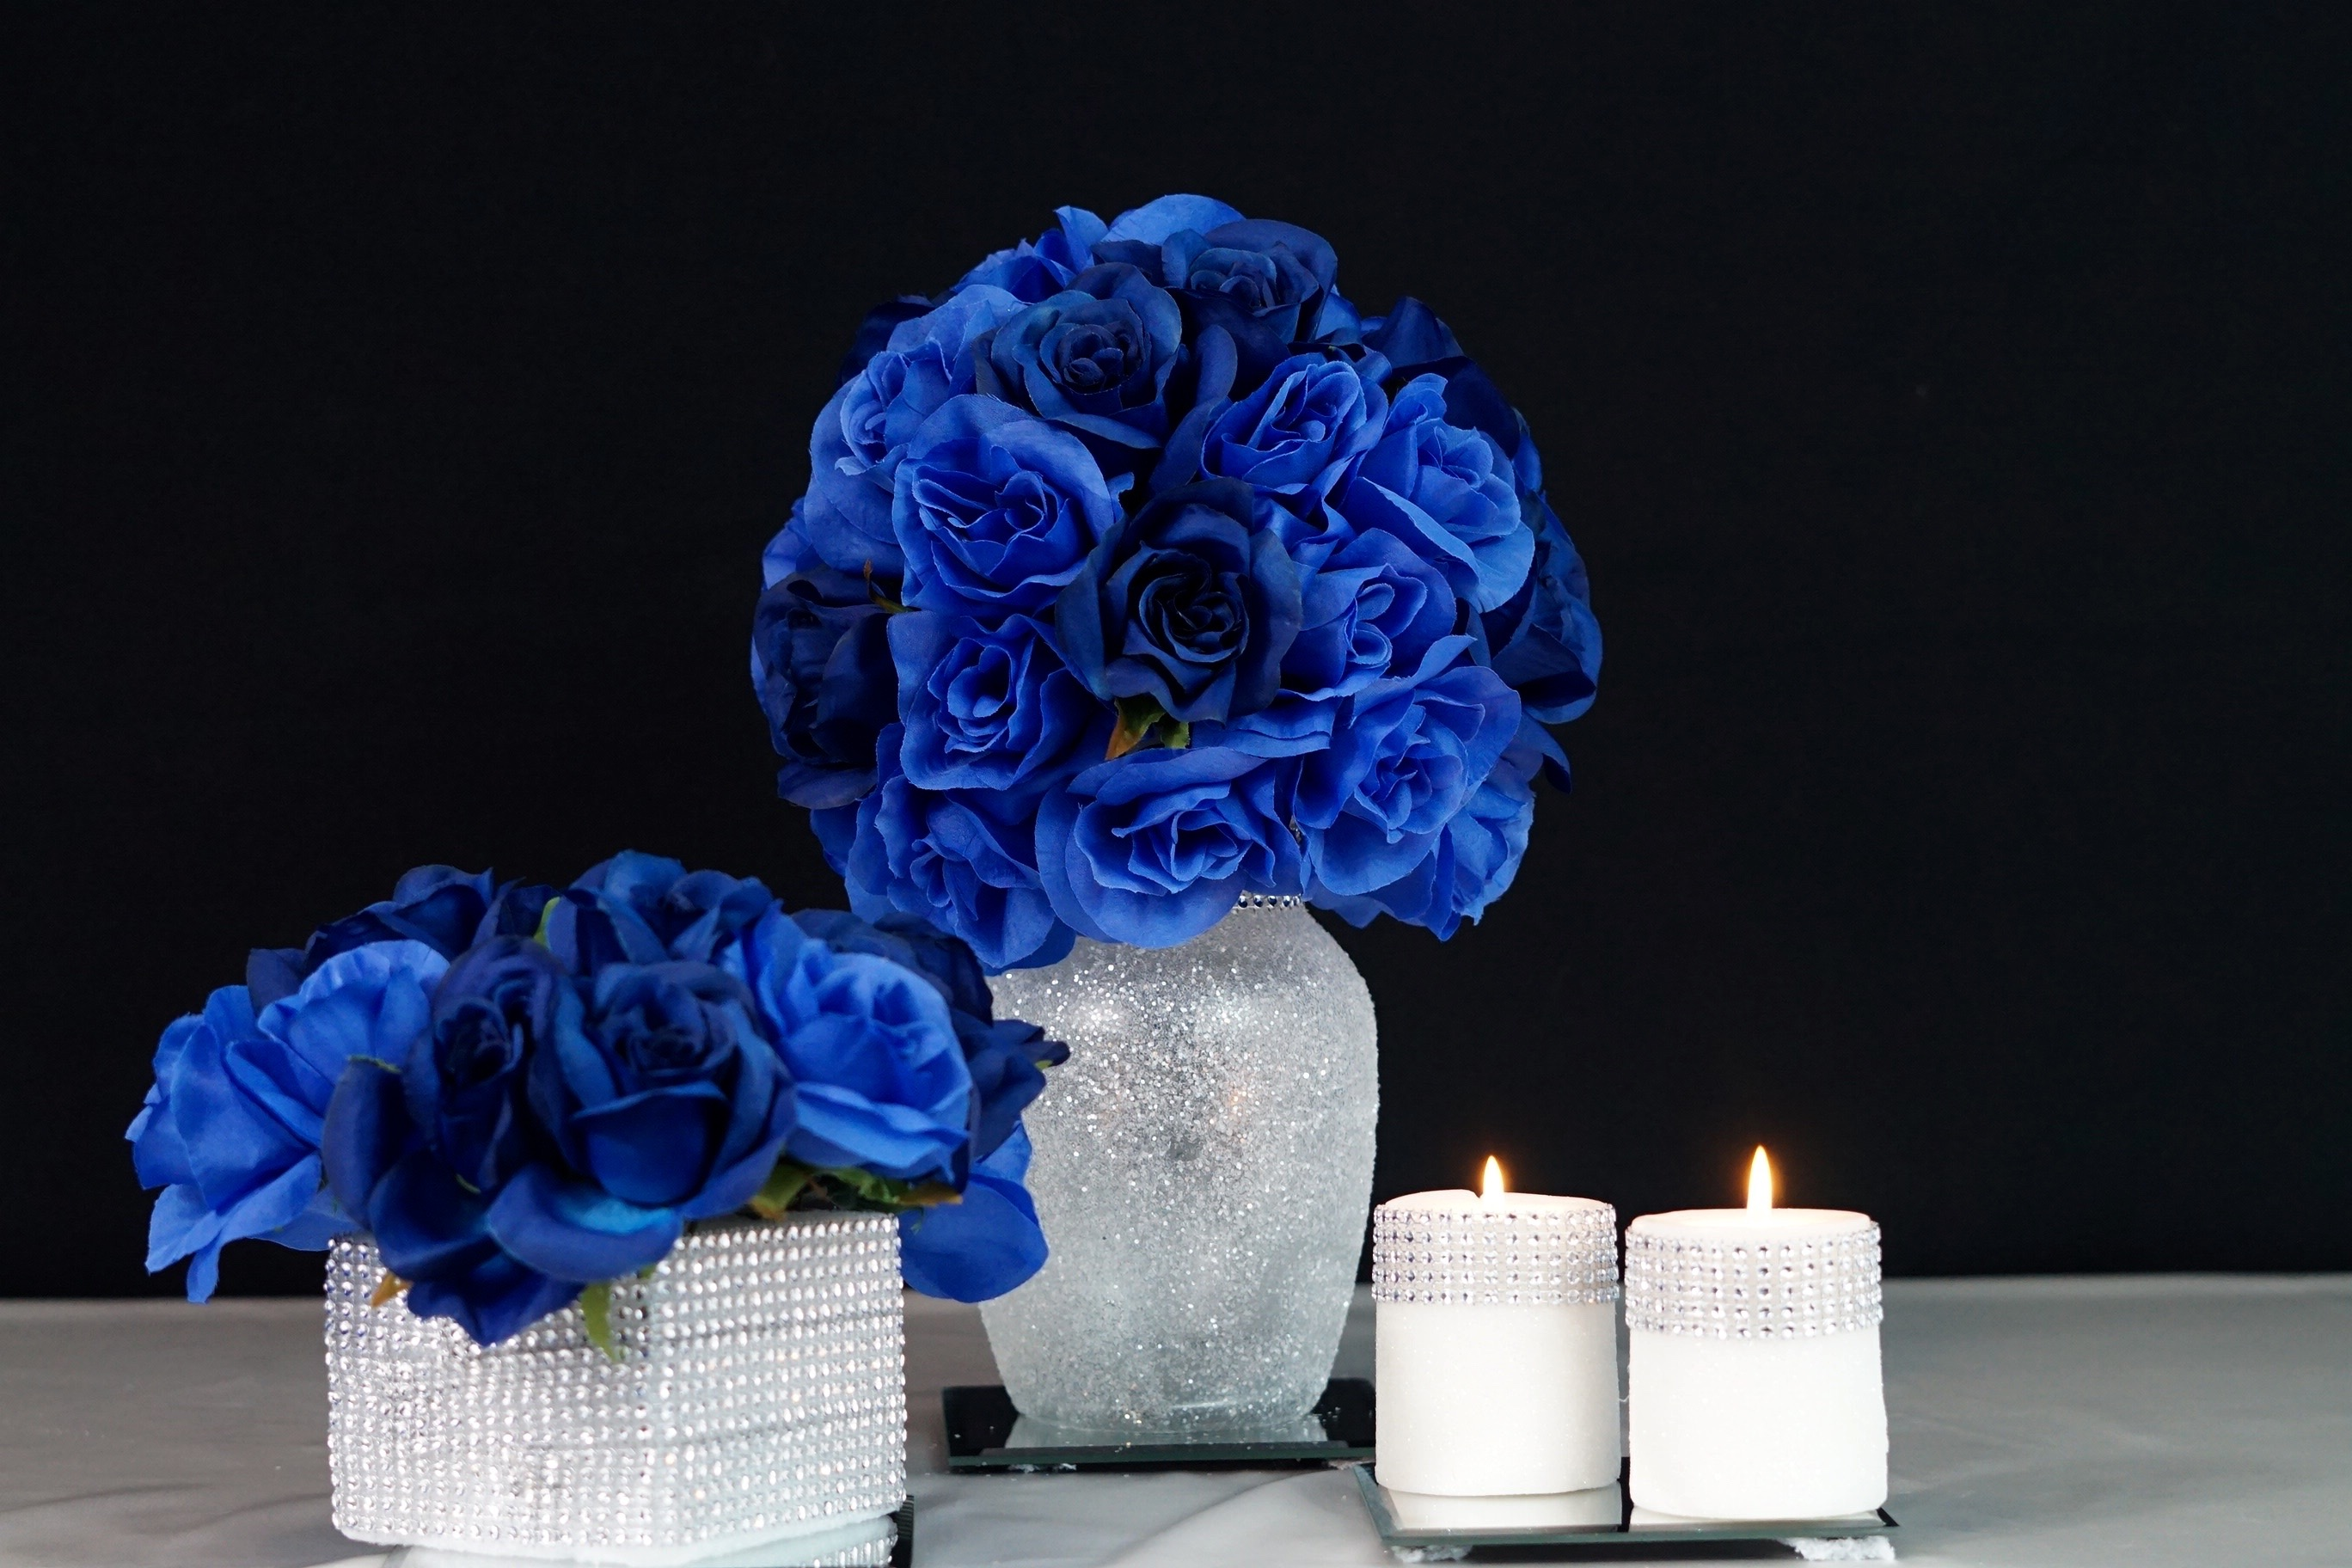 3 Royal Blue Wedding or Quincenera Centerpiece Ideas for Under $10